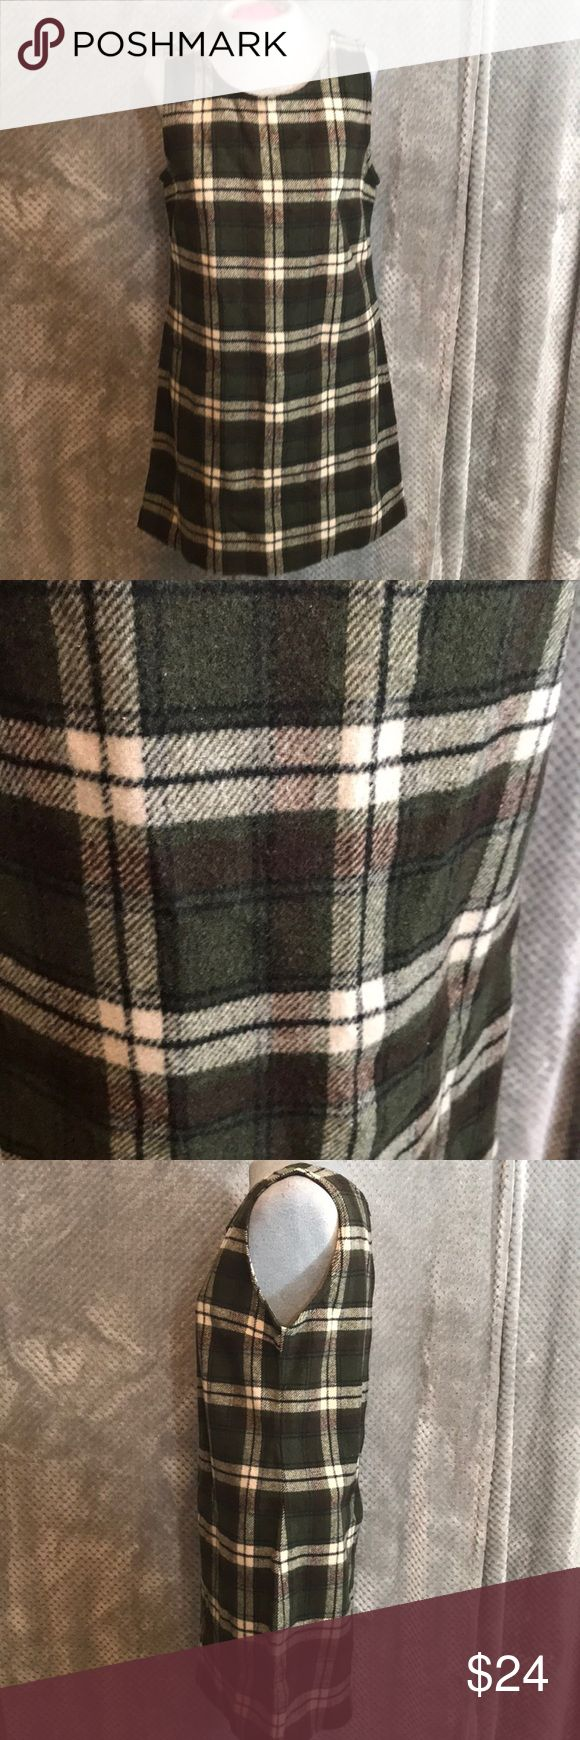 """AMerican eagle outfitters plaid sleeveless jumper Super cute wool blend jumper. Great plaid pattern. Zipper back. Bust 17"""". Length 32"""" American Eagle Outfitters Dresses Midi #americaneagleoutfitters"""